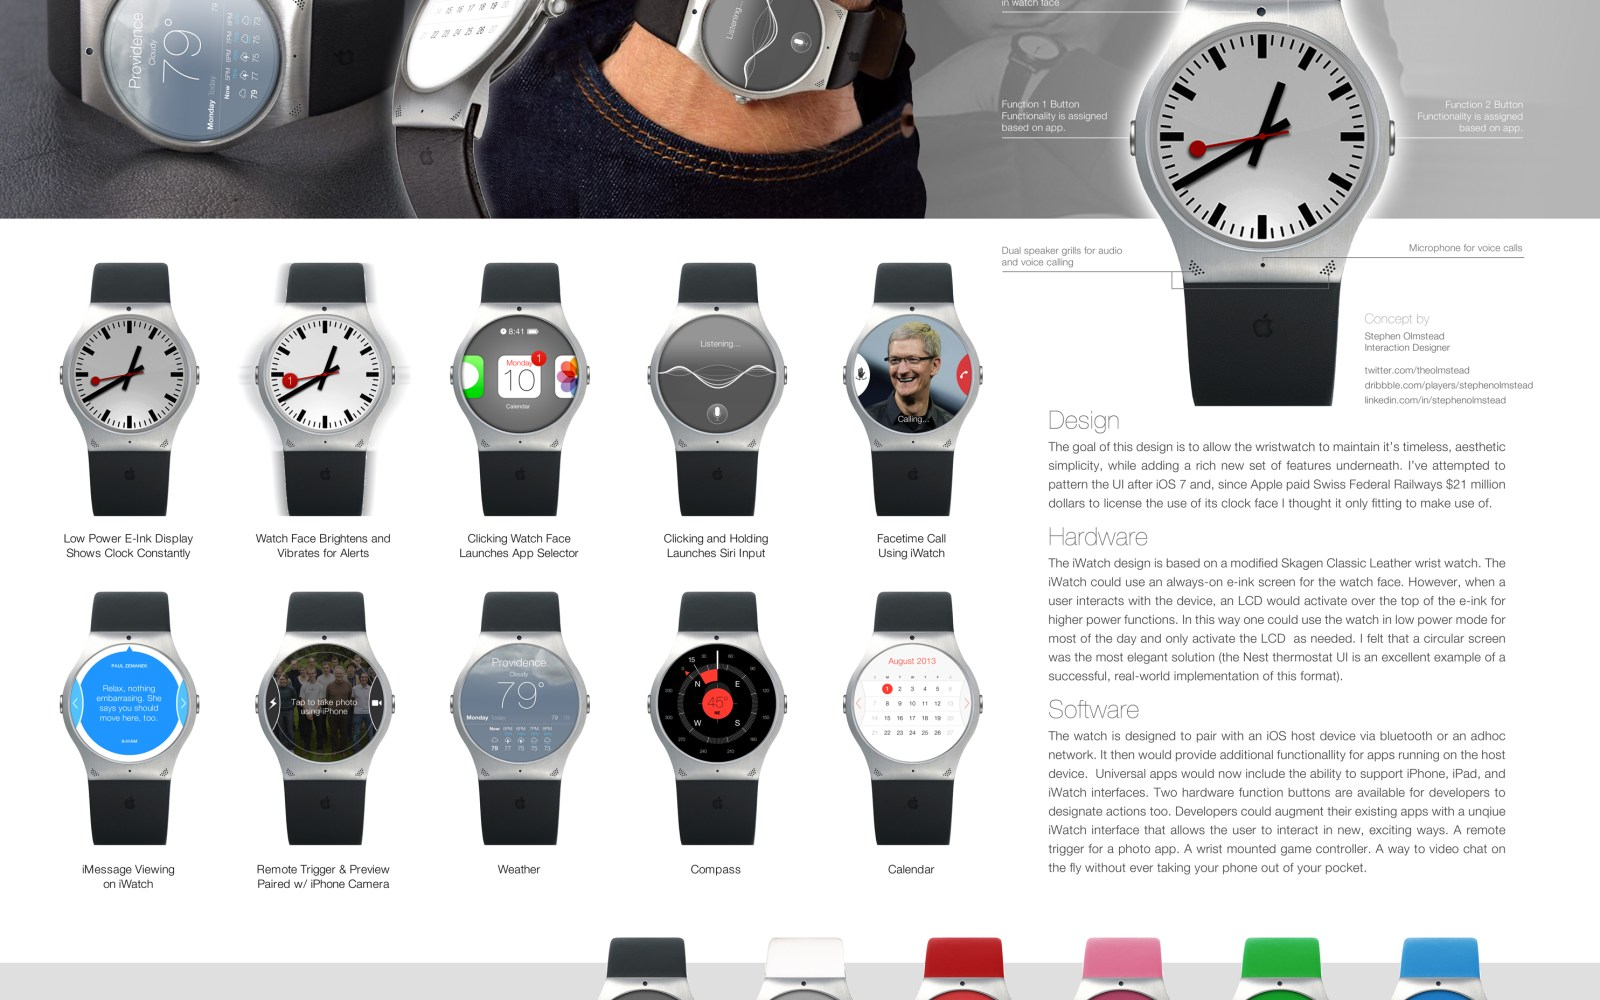 iWatch watch: a roundup of some of the more interesting concepts